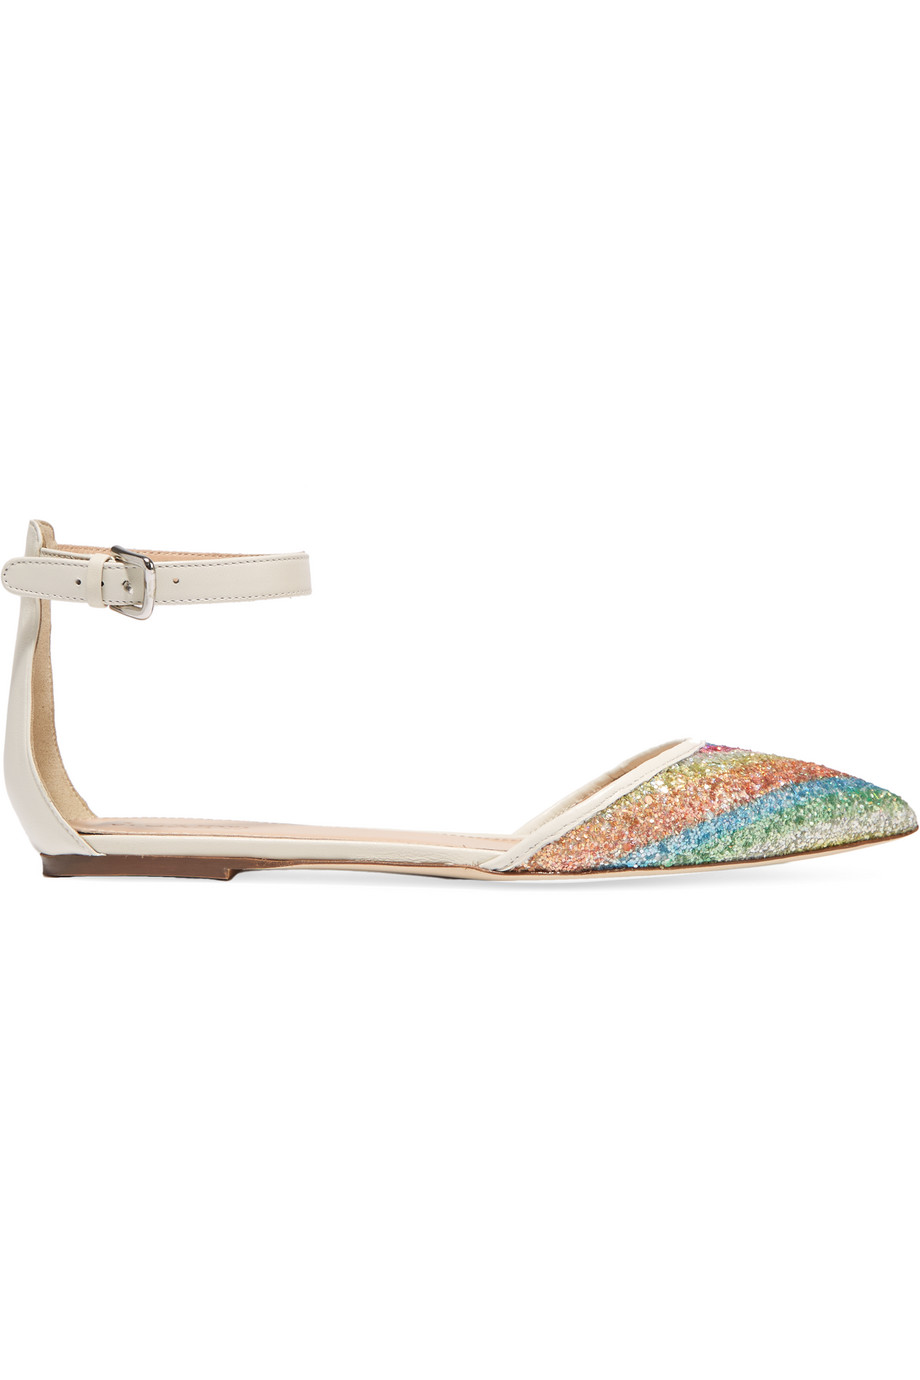 J.Crew Sequined Leather Point-Toe Flats, Size: 5